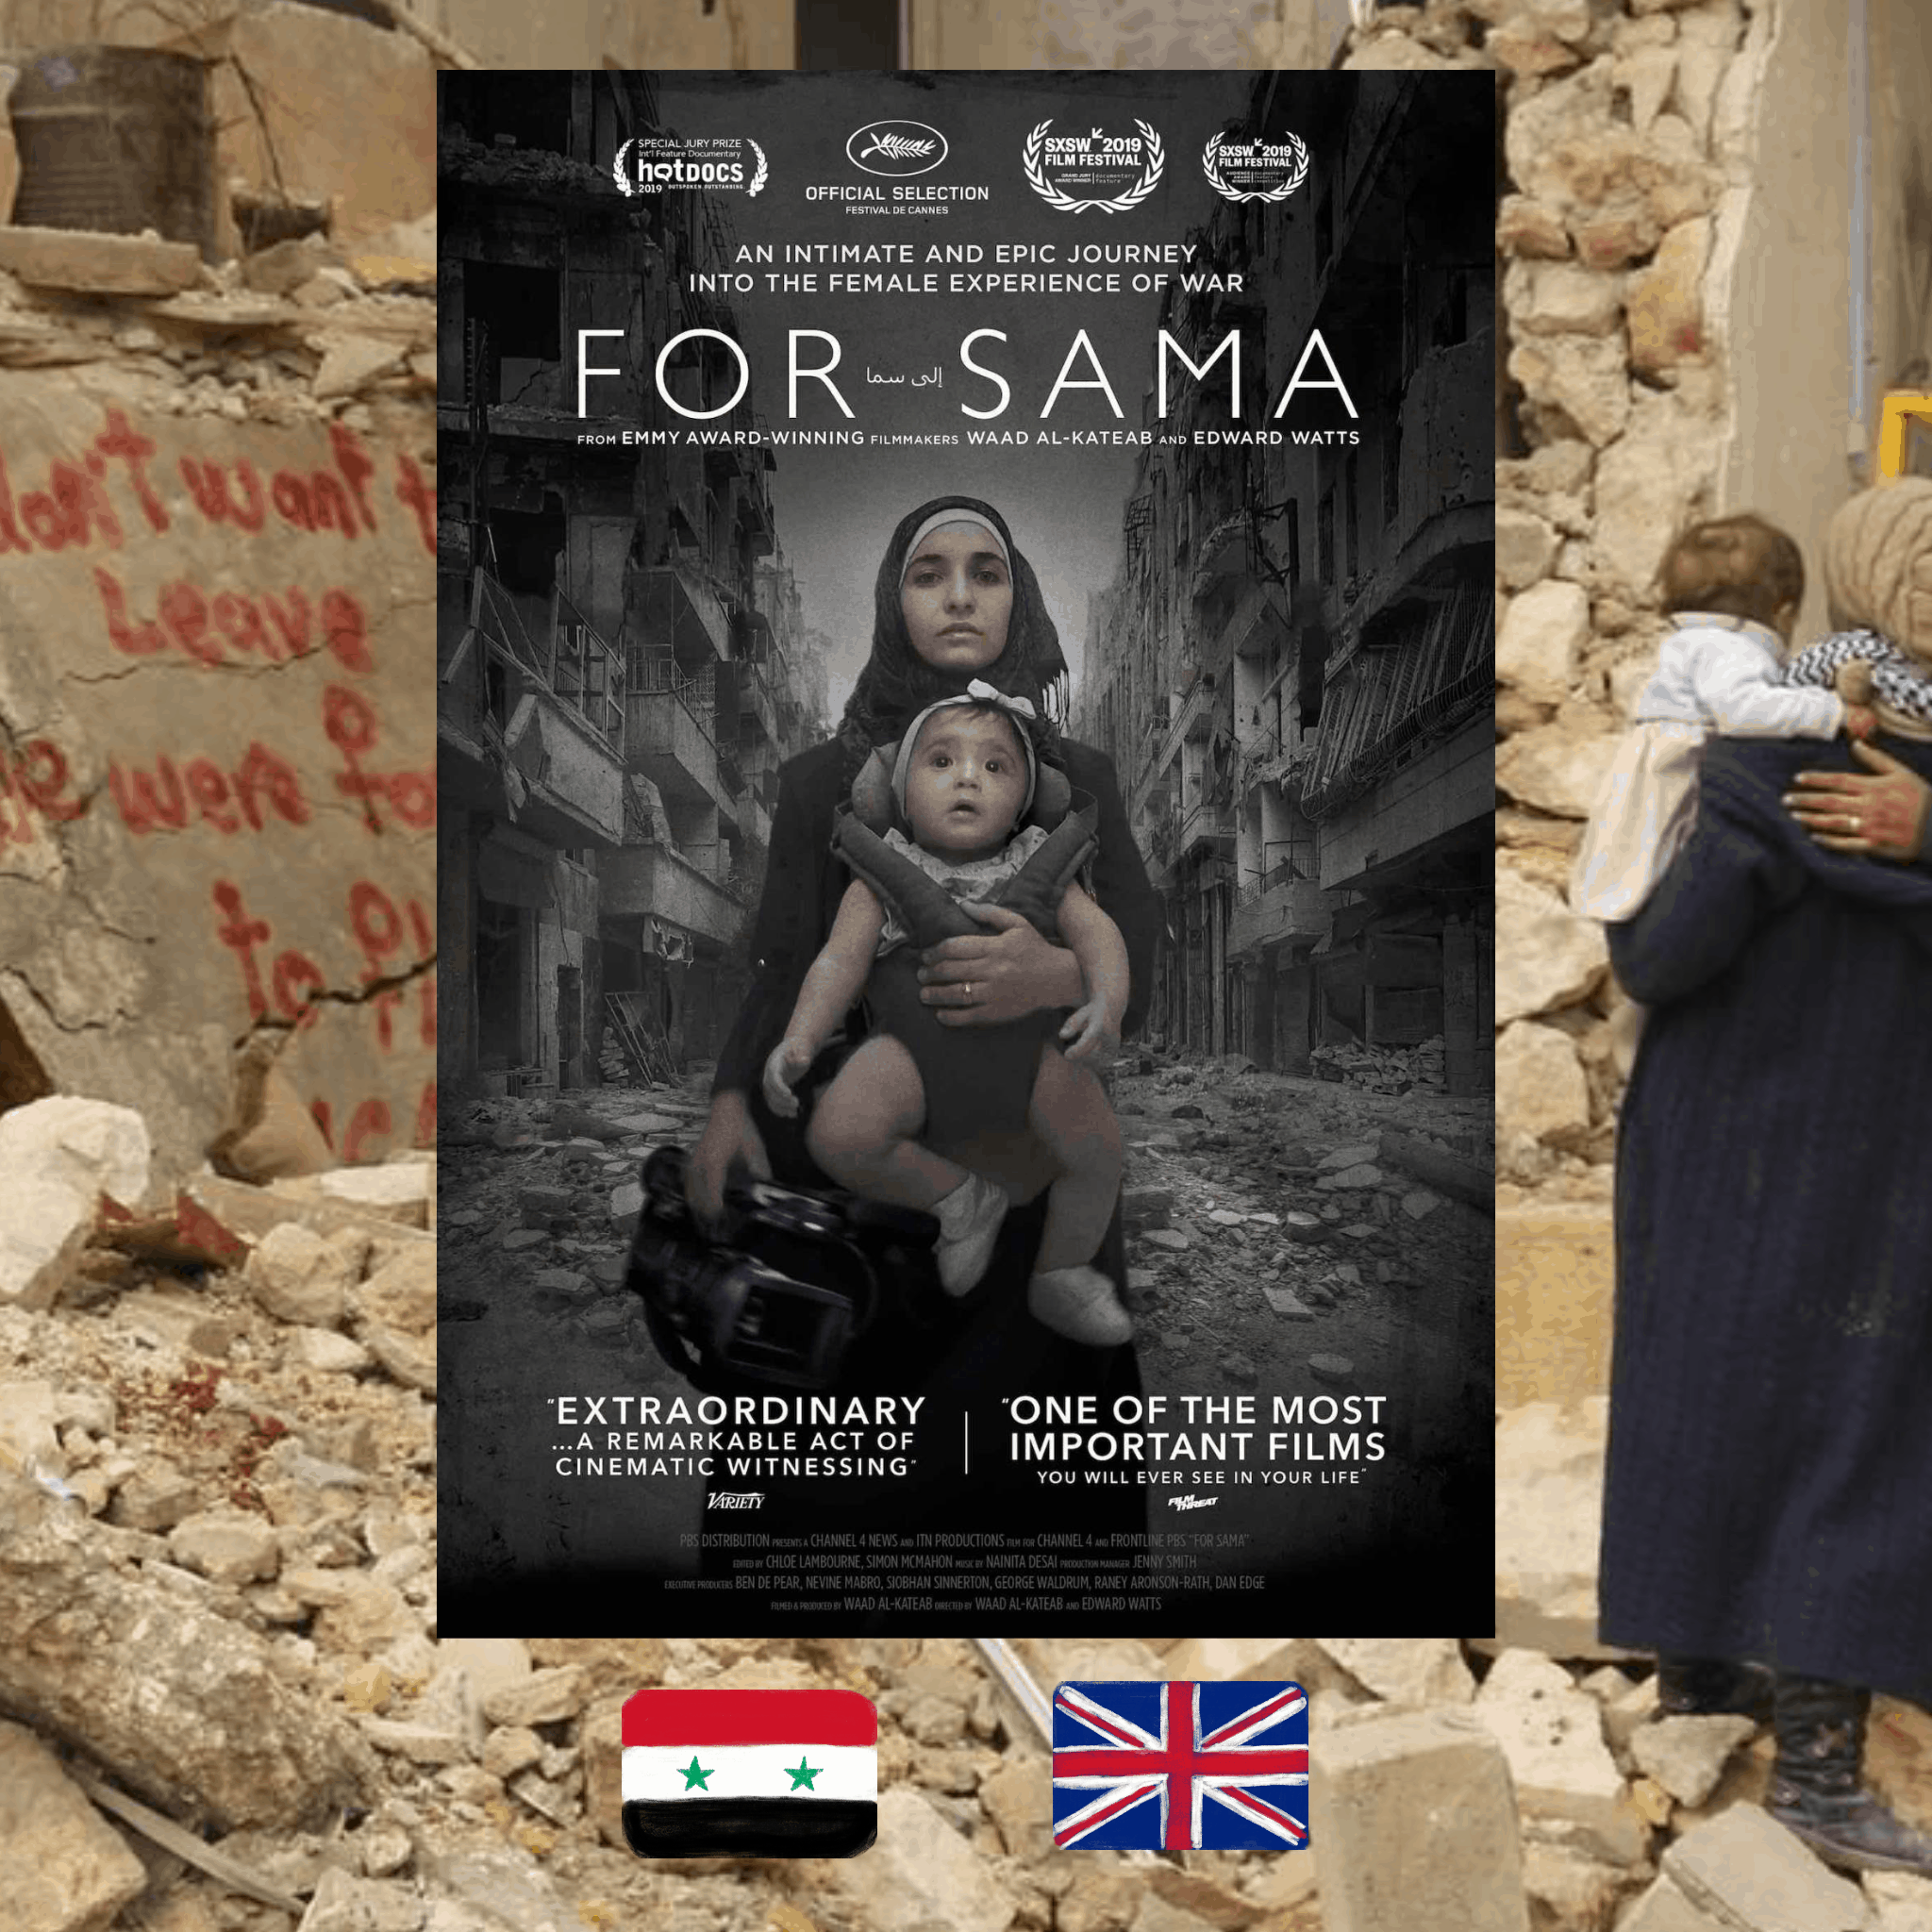 Waad Al-Kateab and Edward Watts, For Sama movie poster